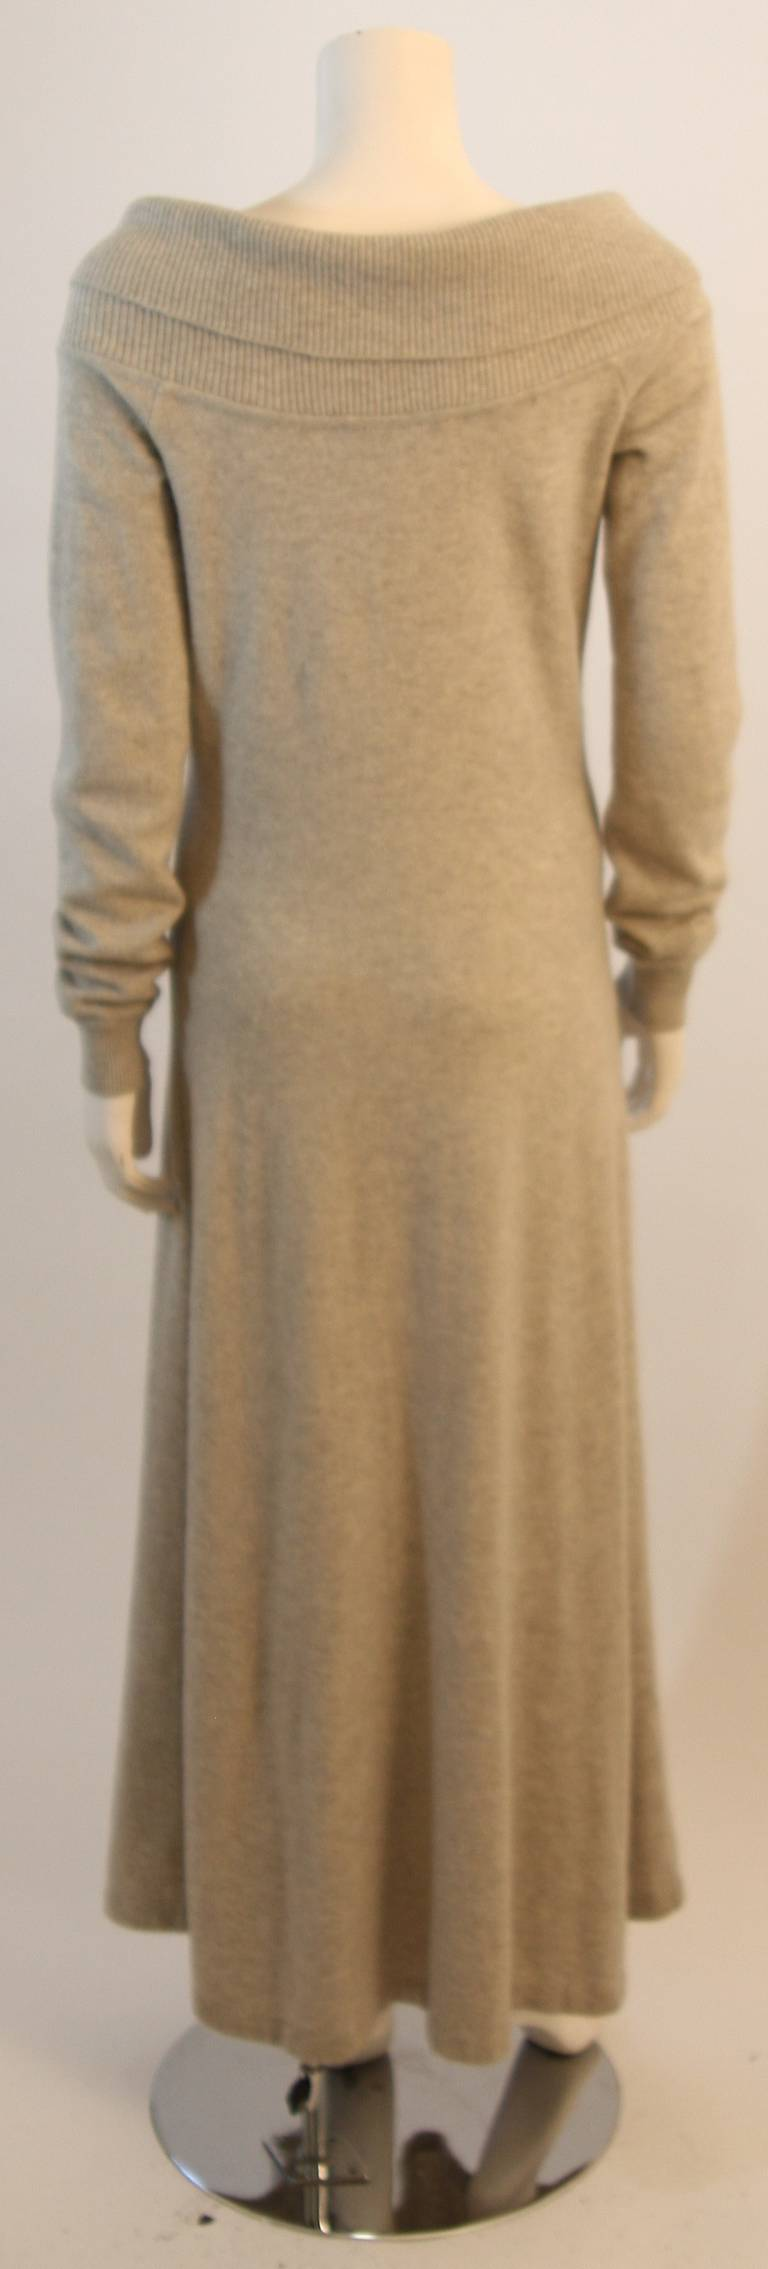 Ralph Lauren Full Length Cashmere Off-the-shoulder Dress Size Medium 9